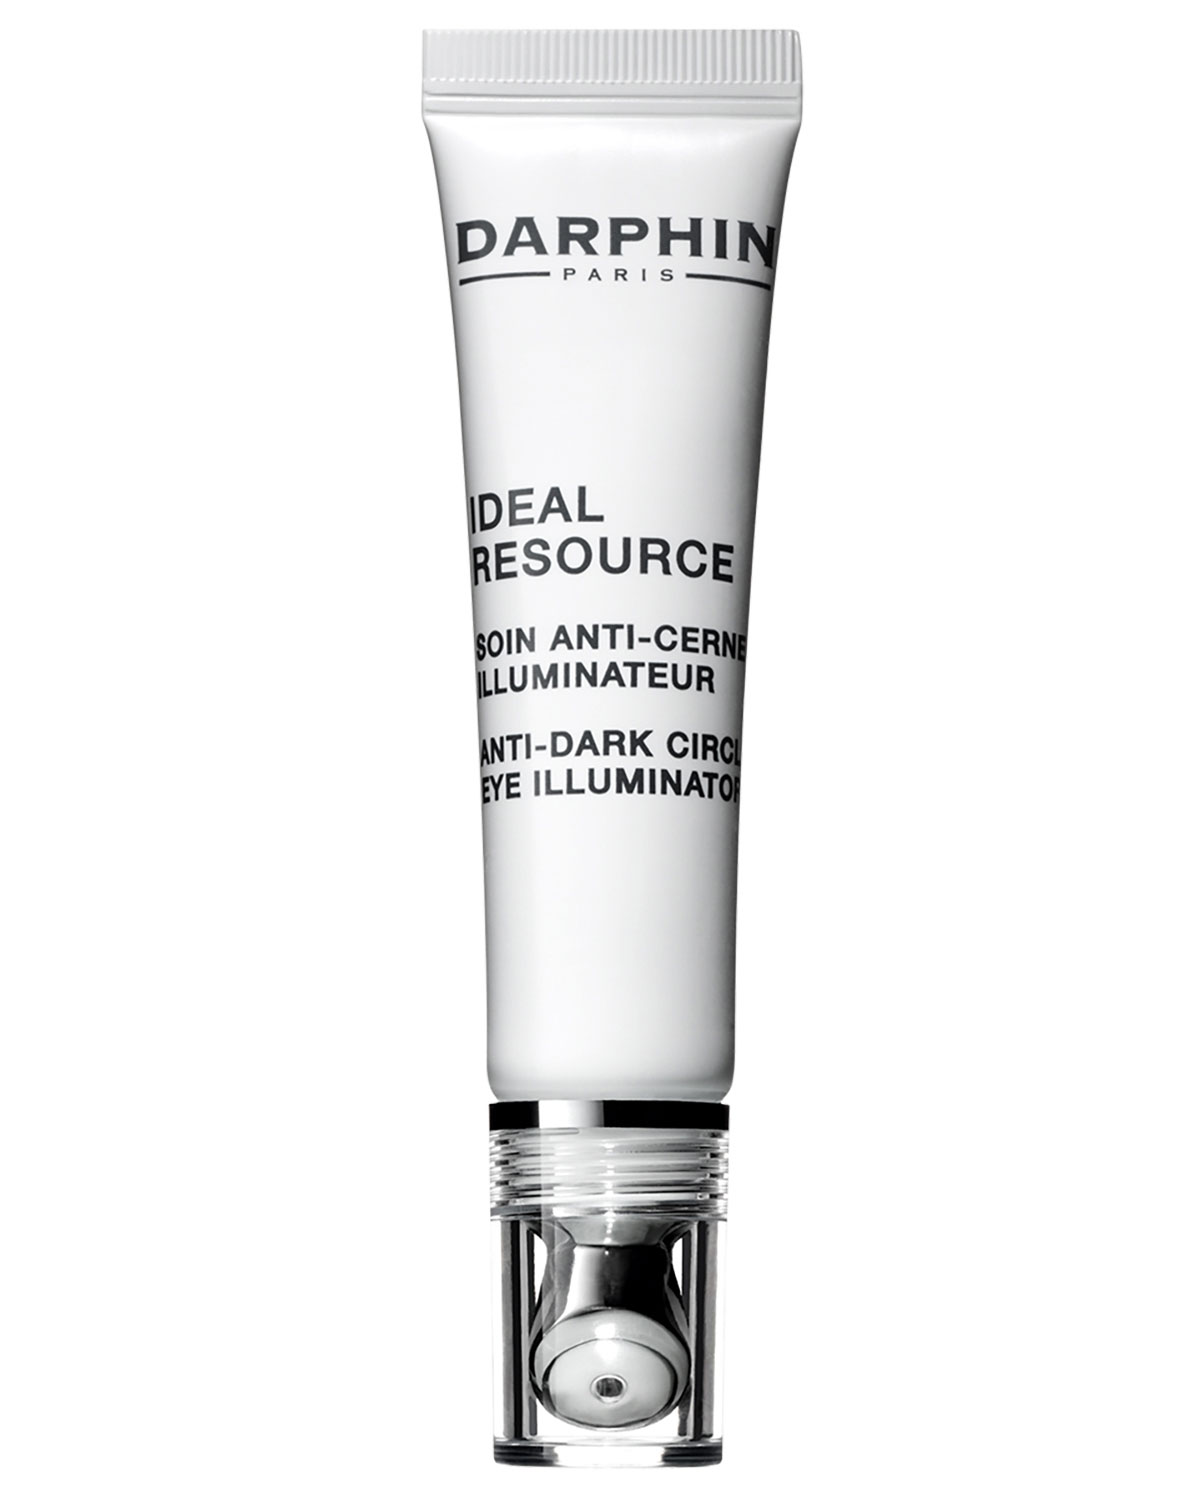 DARPHIN Ideal Resource Anti-Dark Circle Eye Illuminator, 0.51 Oz.